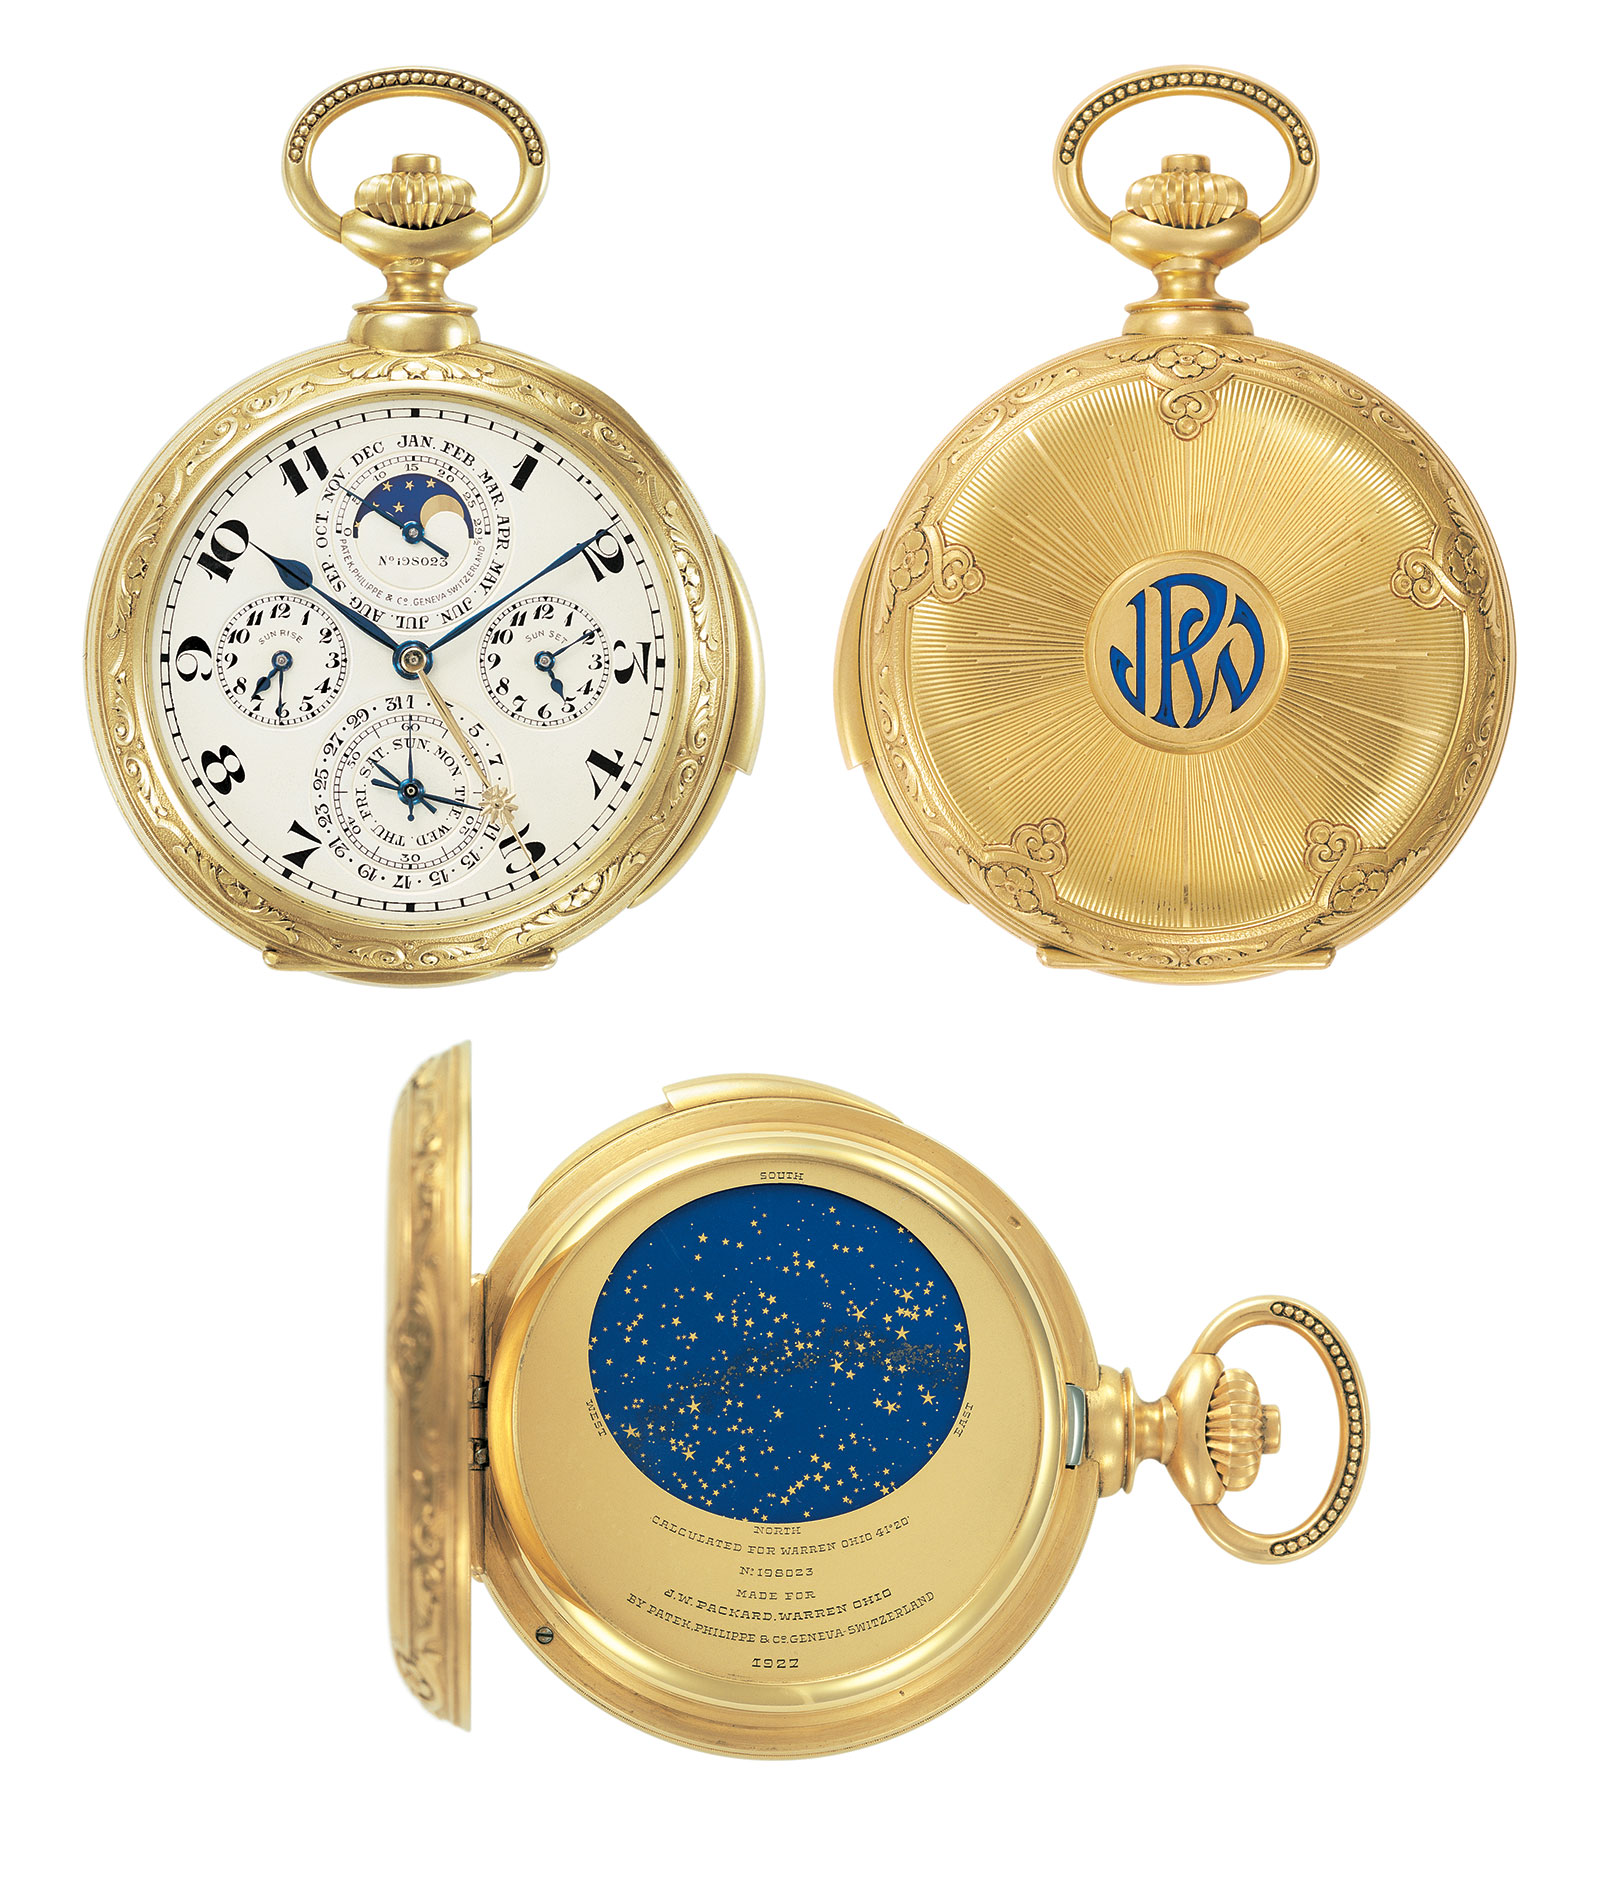 Patek James Ward Packard Astronomical Watch 1925